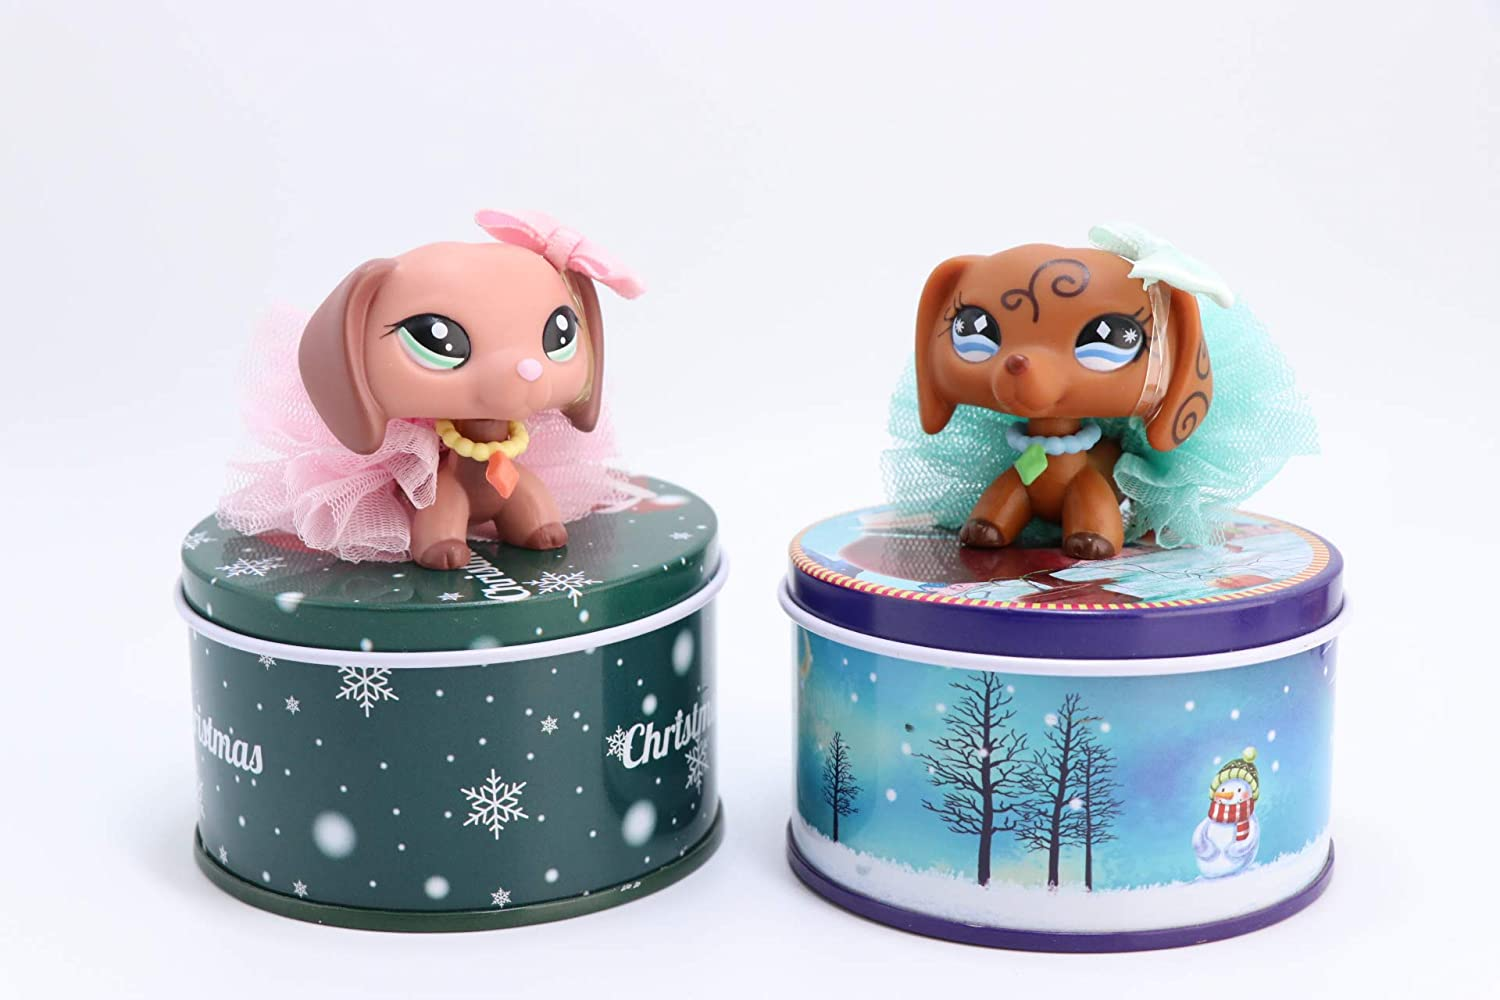 Toy Rare LPS Dachshund 640 2046 with Accessories Lot Bow Skirt Collar with Carry Box Collection Figure Girls Boys Christmas Gift